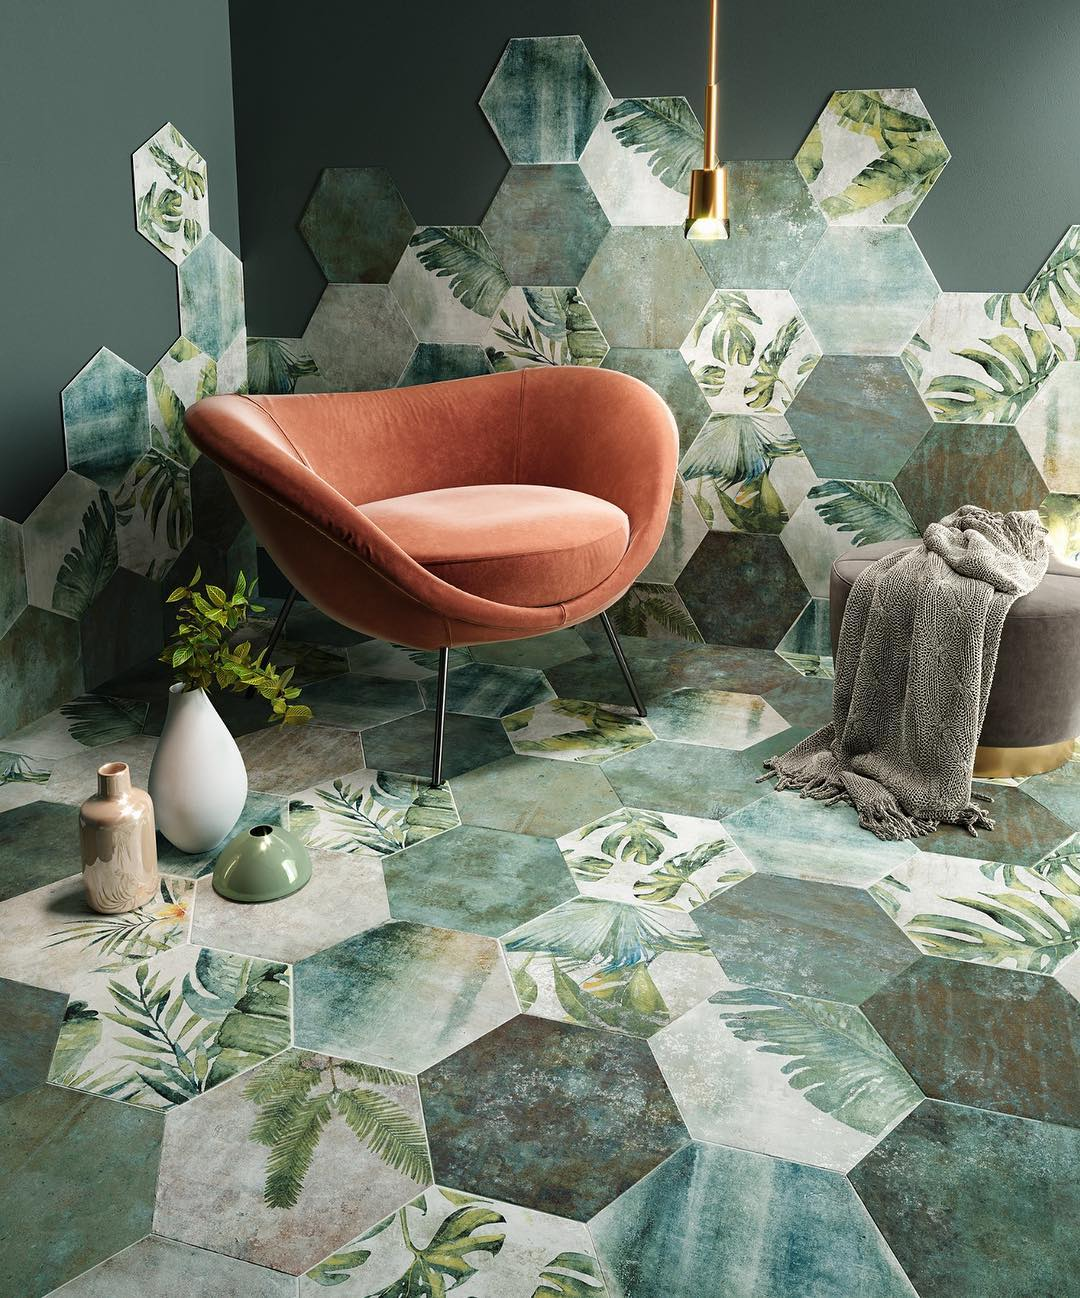 Relax corner with biophilic hexagonal tiles with a leaf pattern.